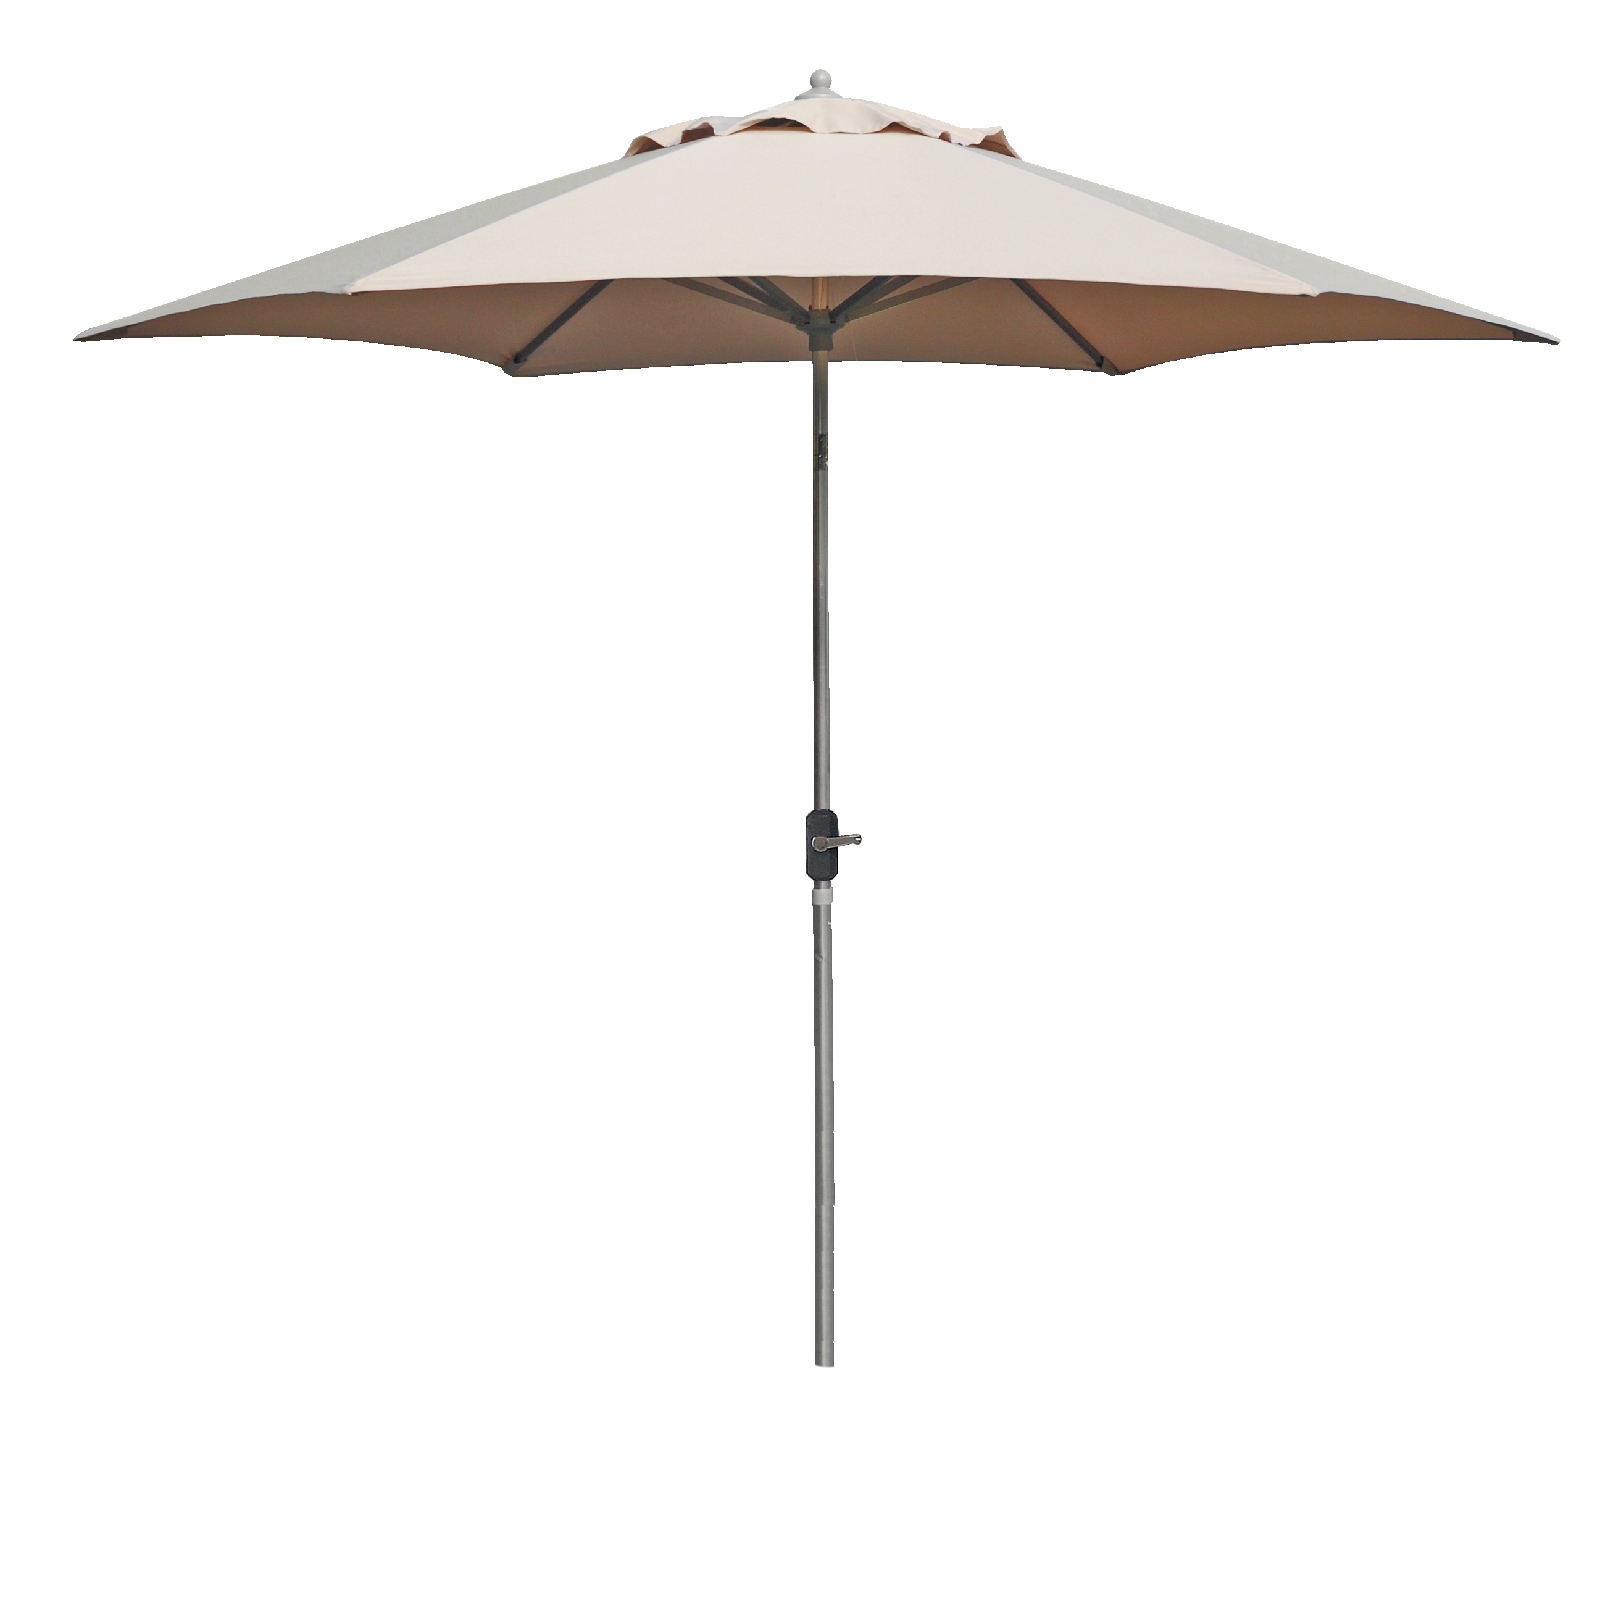 Market Umbrella: $50 -